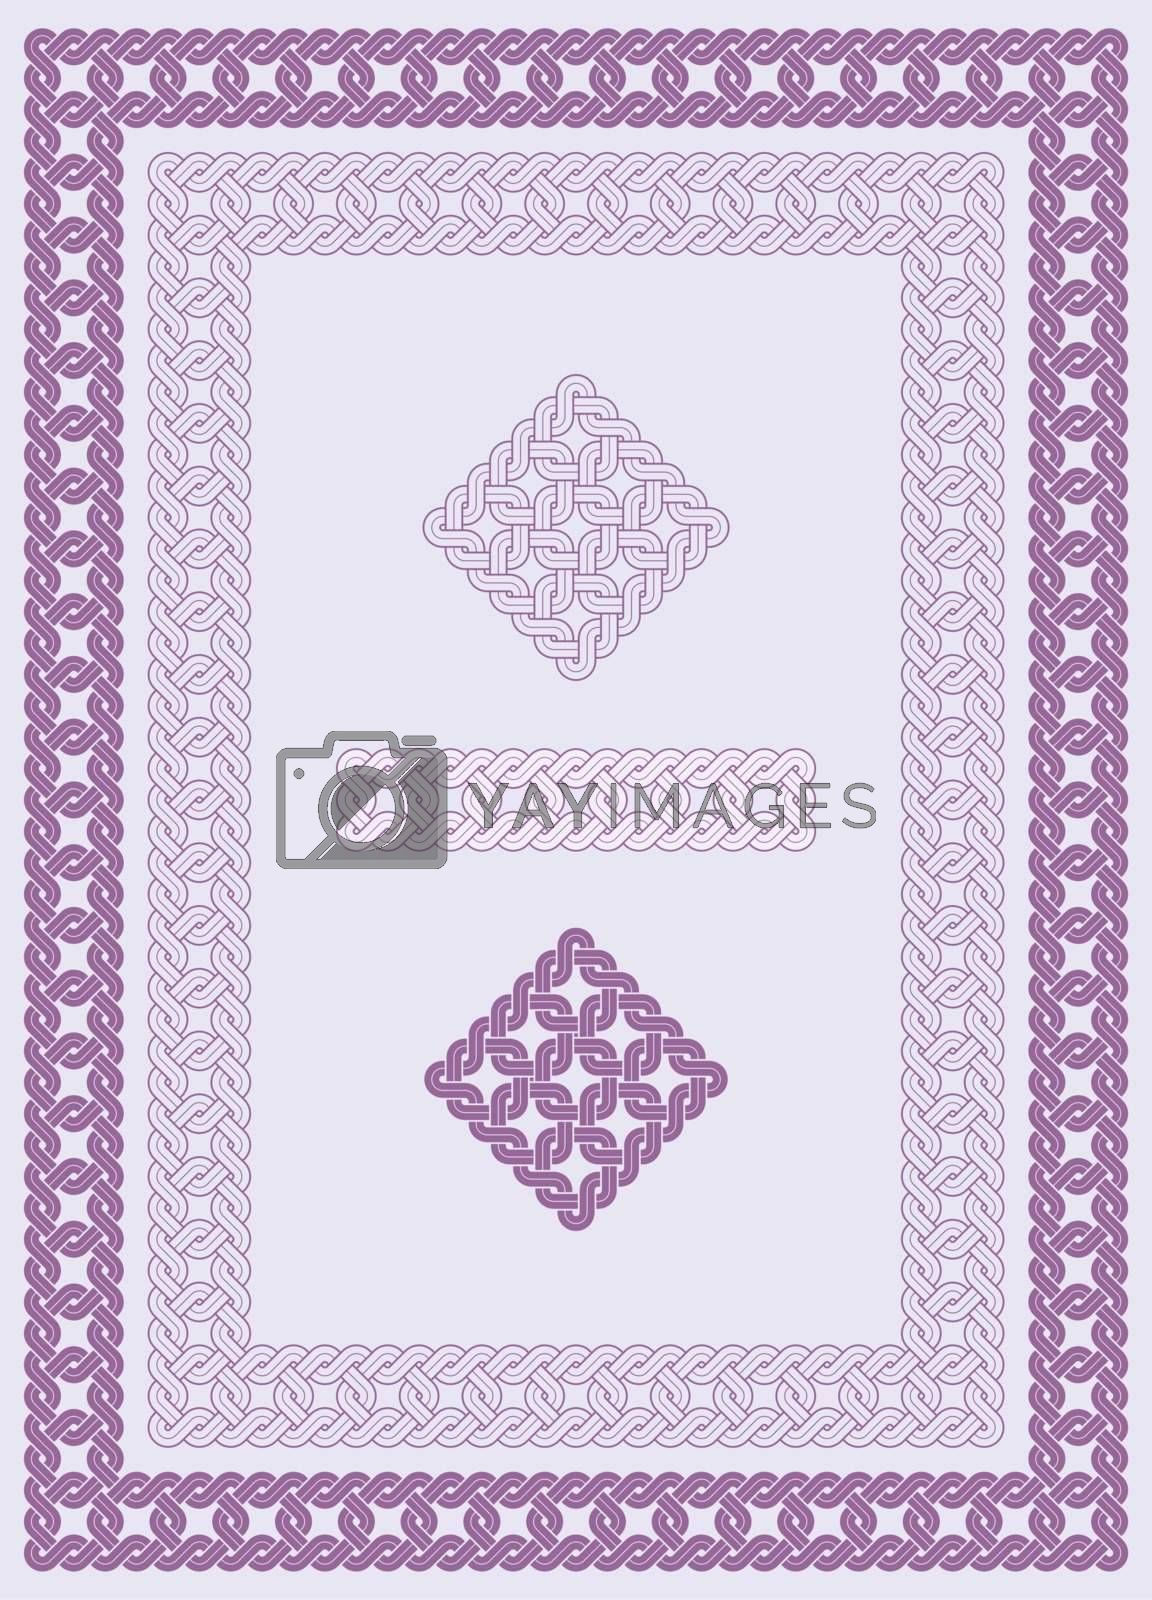 ornament, knot, stonemason, carving, fretwork, engrave, border,